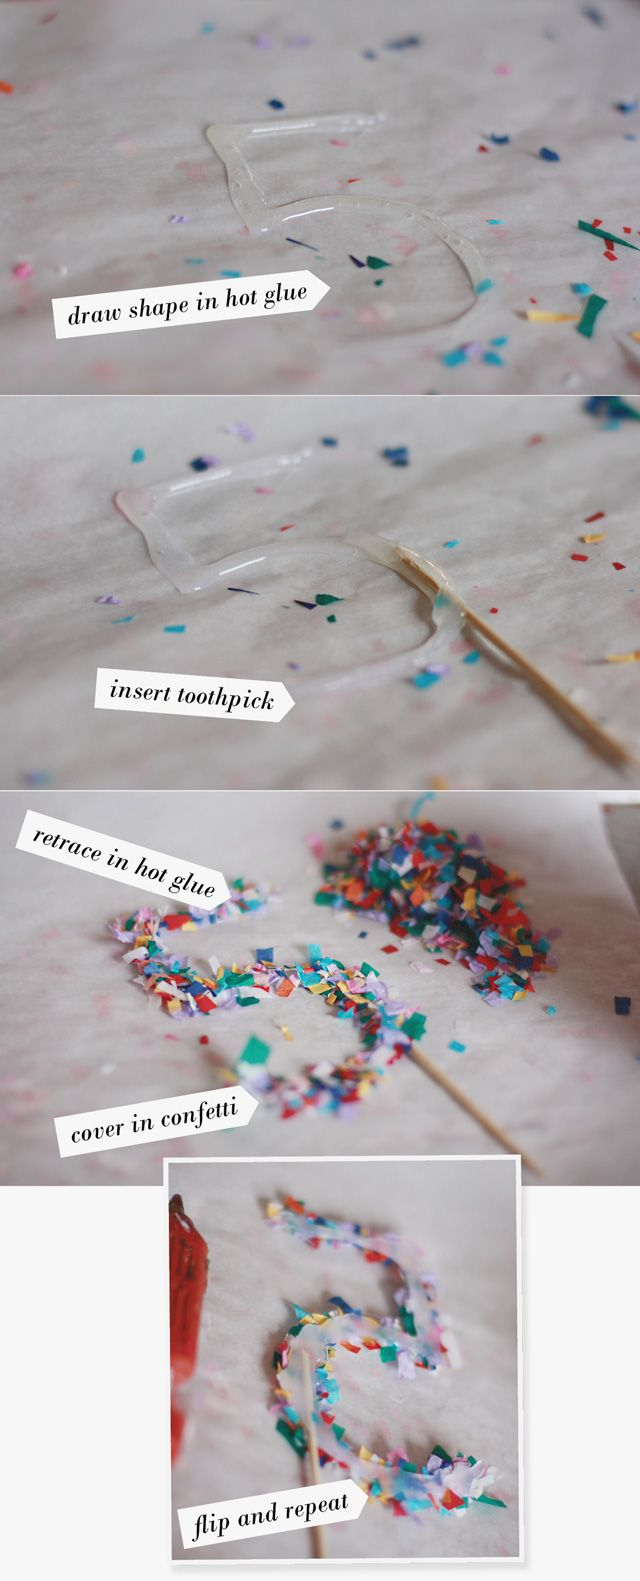 Confetti Cake Toppers Materials: •Parchment paper (NOT WAX PAPER) •Confetti shreds (click here for directions) •Hot glue and hot glue gun •Toothpicks